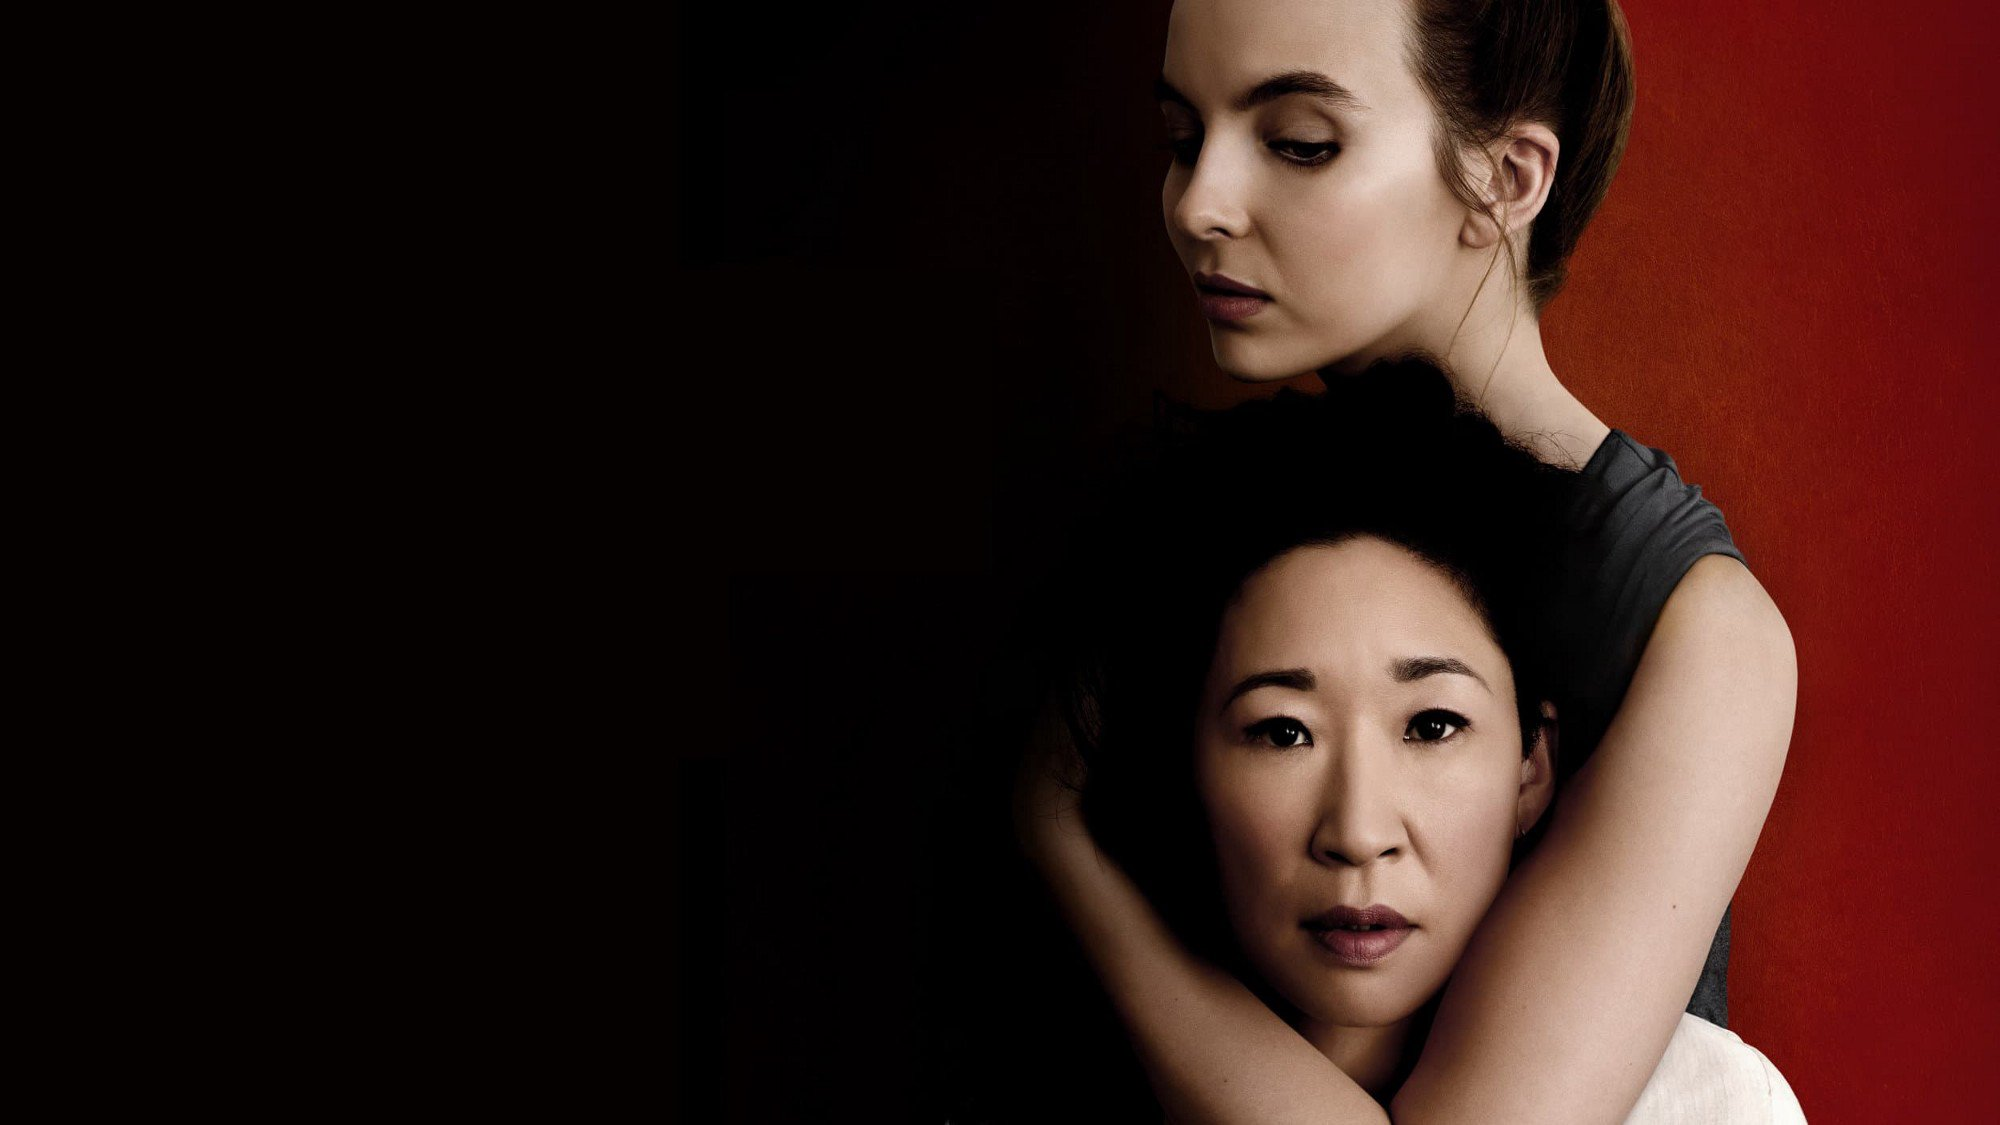 Killing Eve's Jodie Comer and Sandra Oh tease forbidden romance will dominate season 2